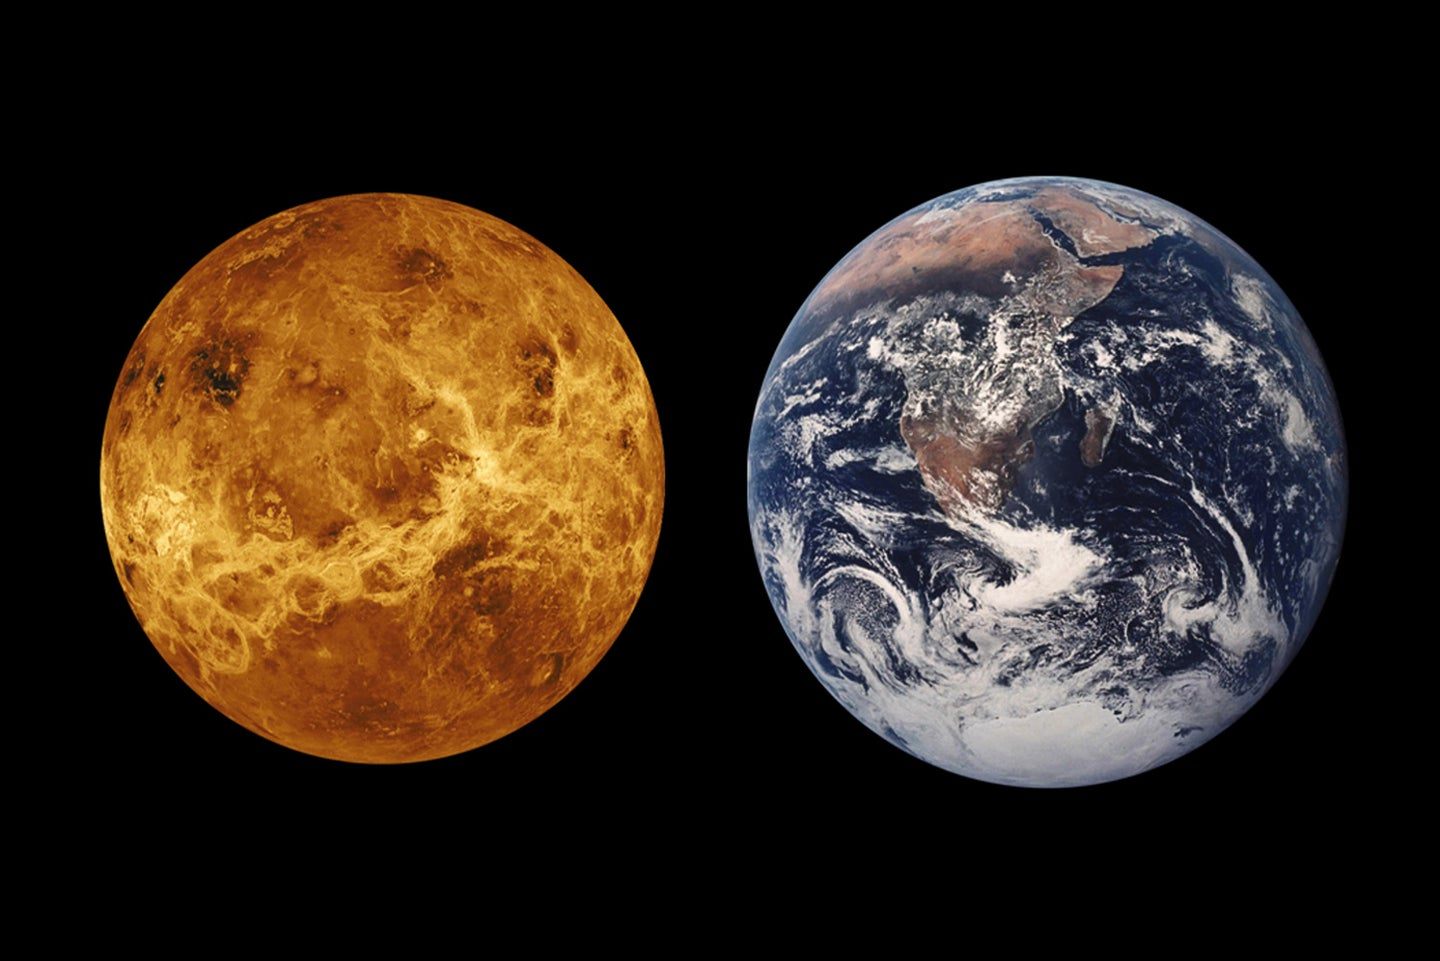 Venus may have been habitable and Earth-like before greenhouse gas took over